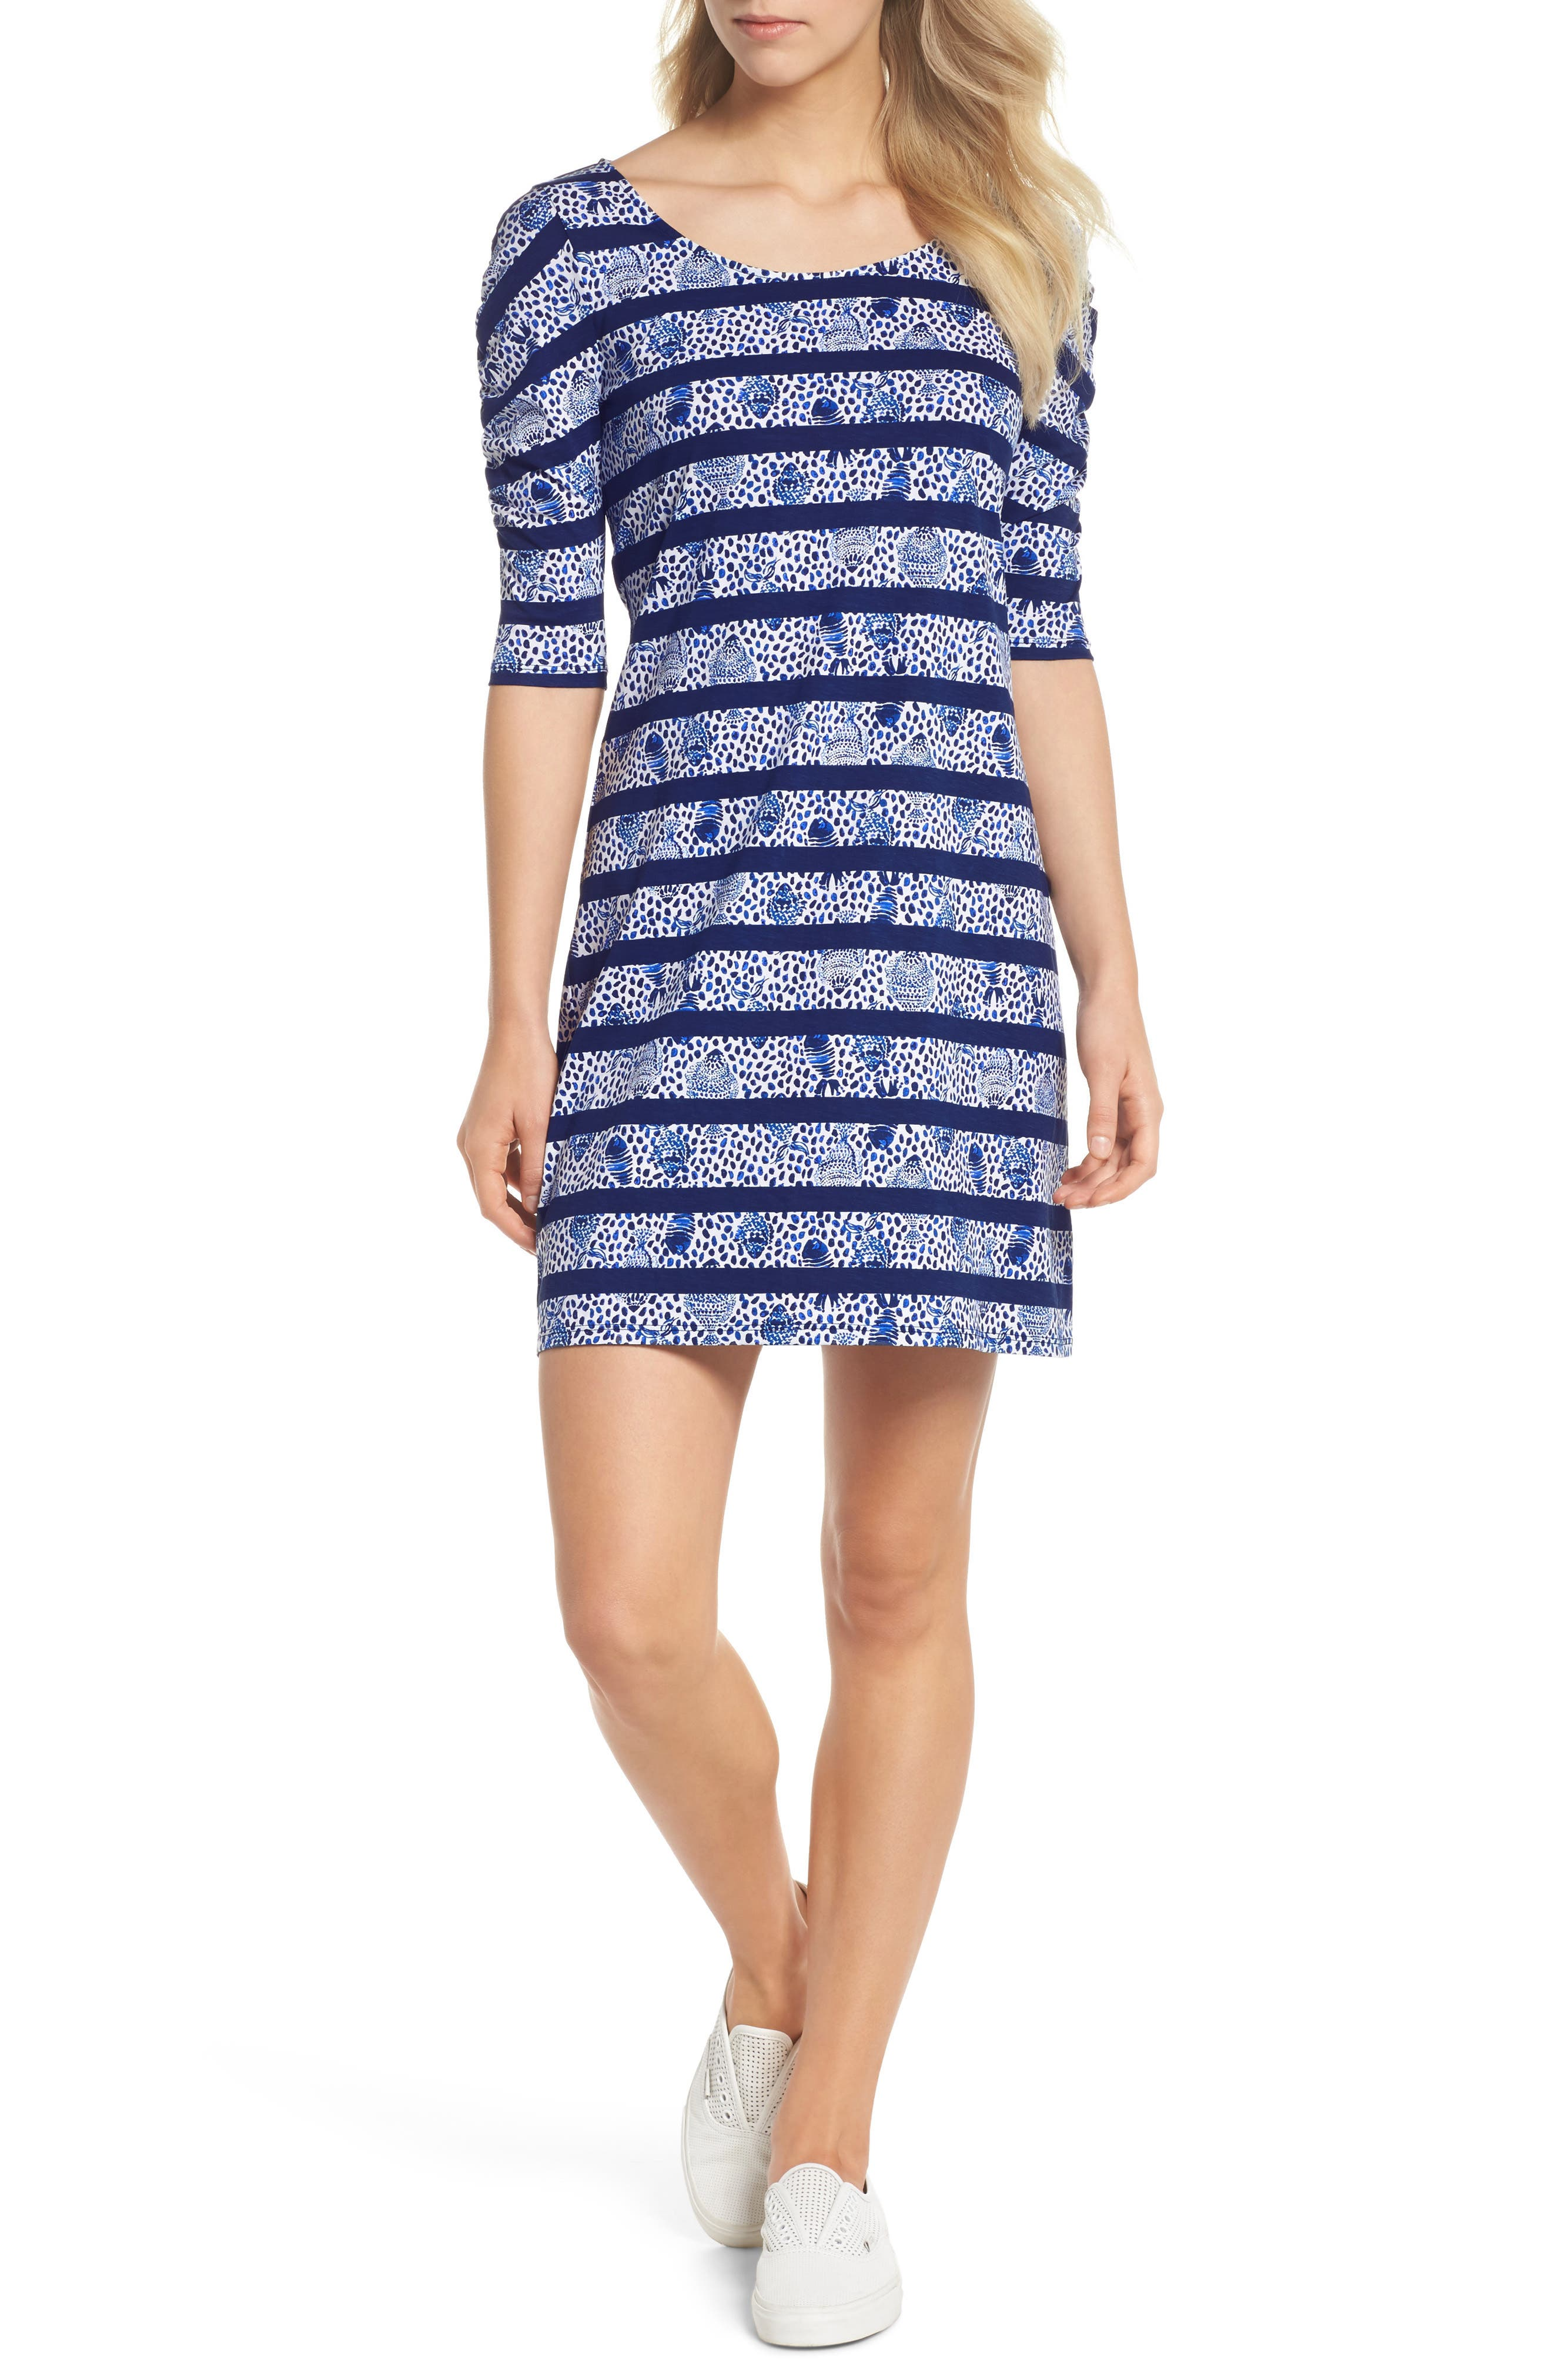 Lajolla Stripe Dress,                         Main,                         color, High Tide Heart And Sole